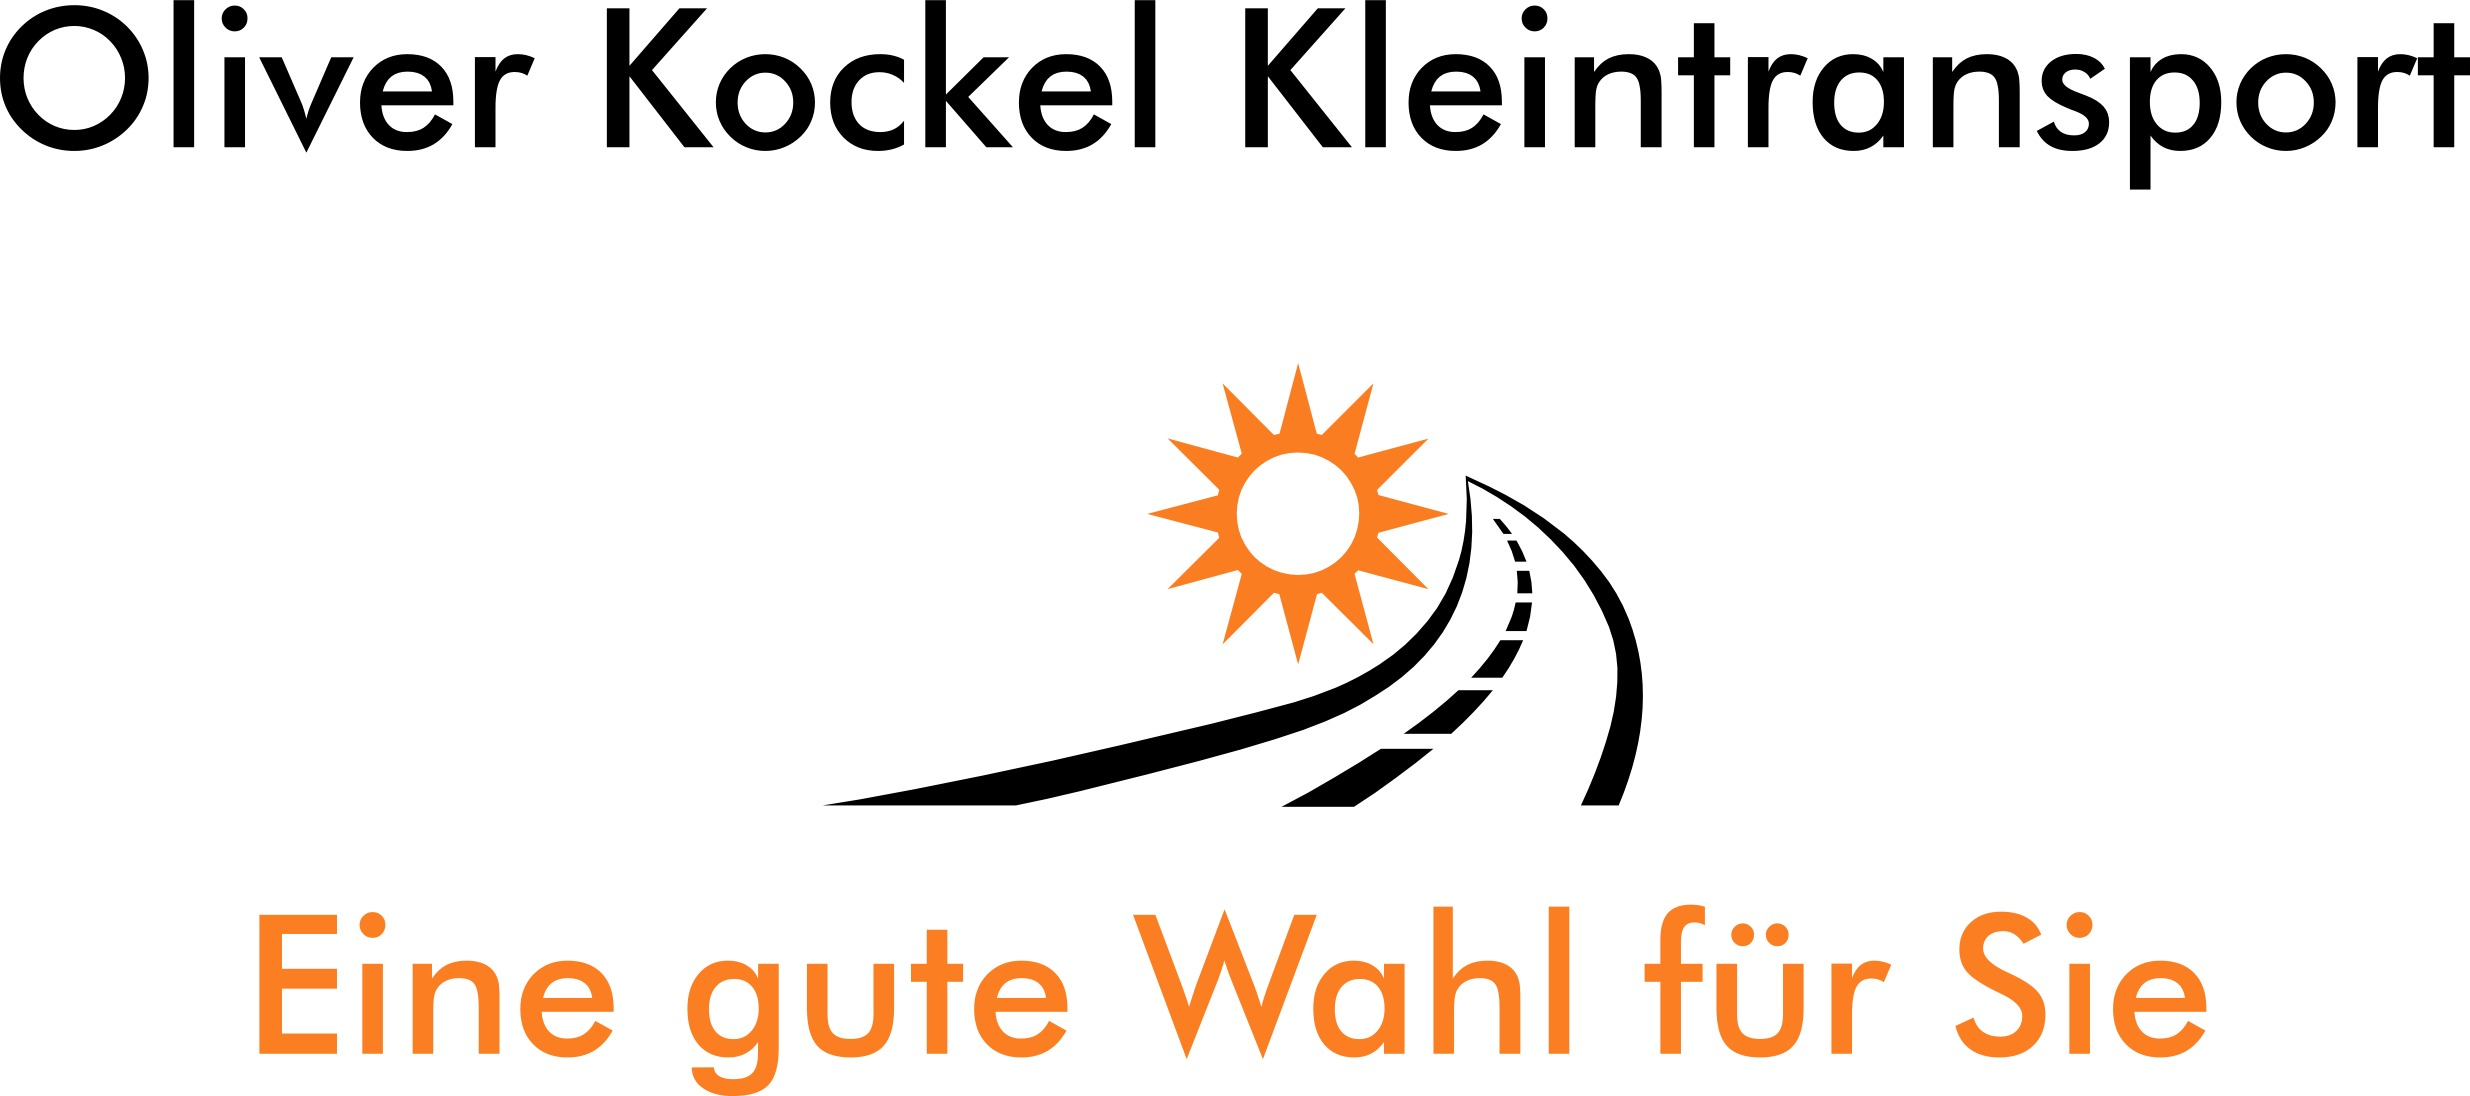 Oliver Kockel Kleintransport